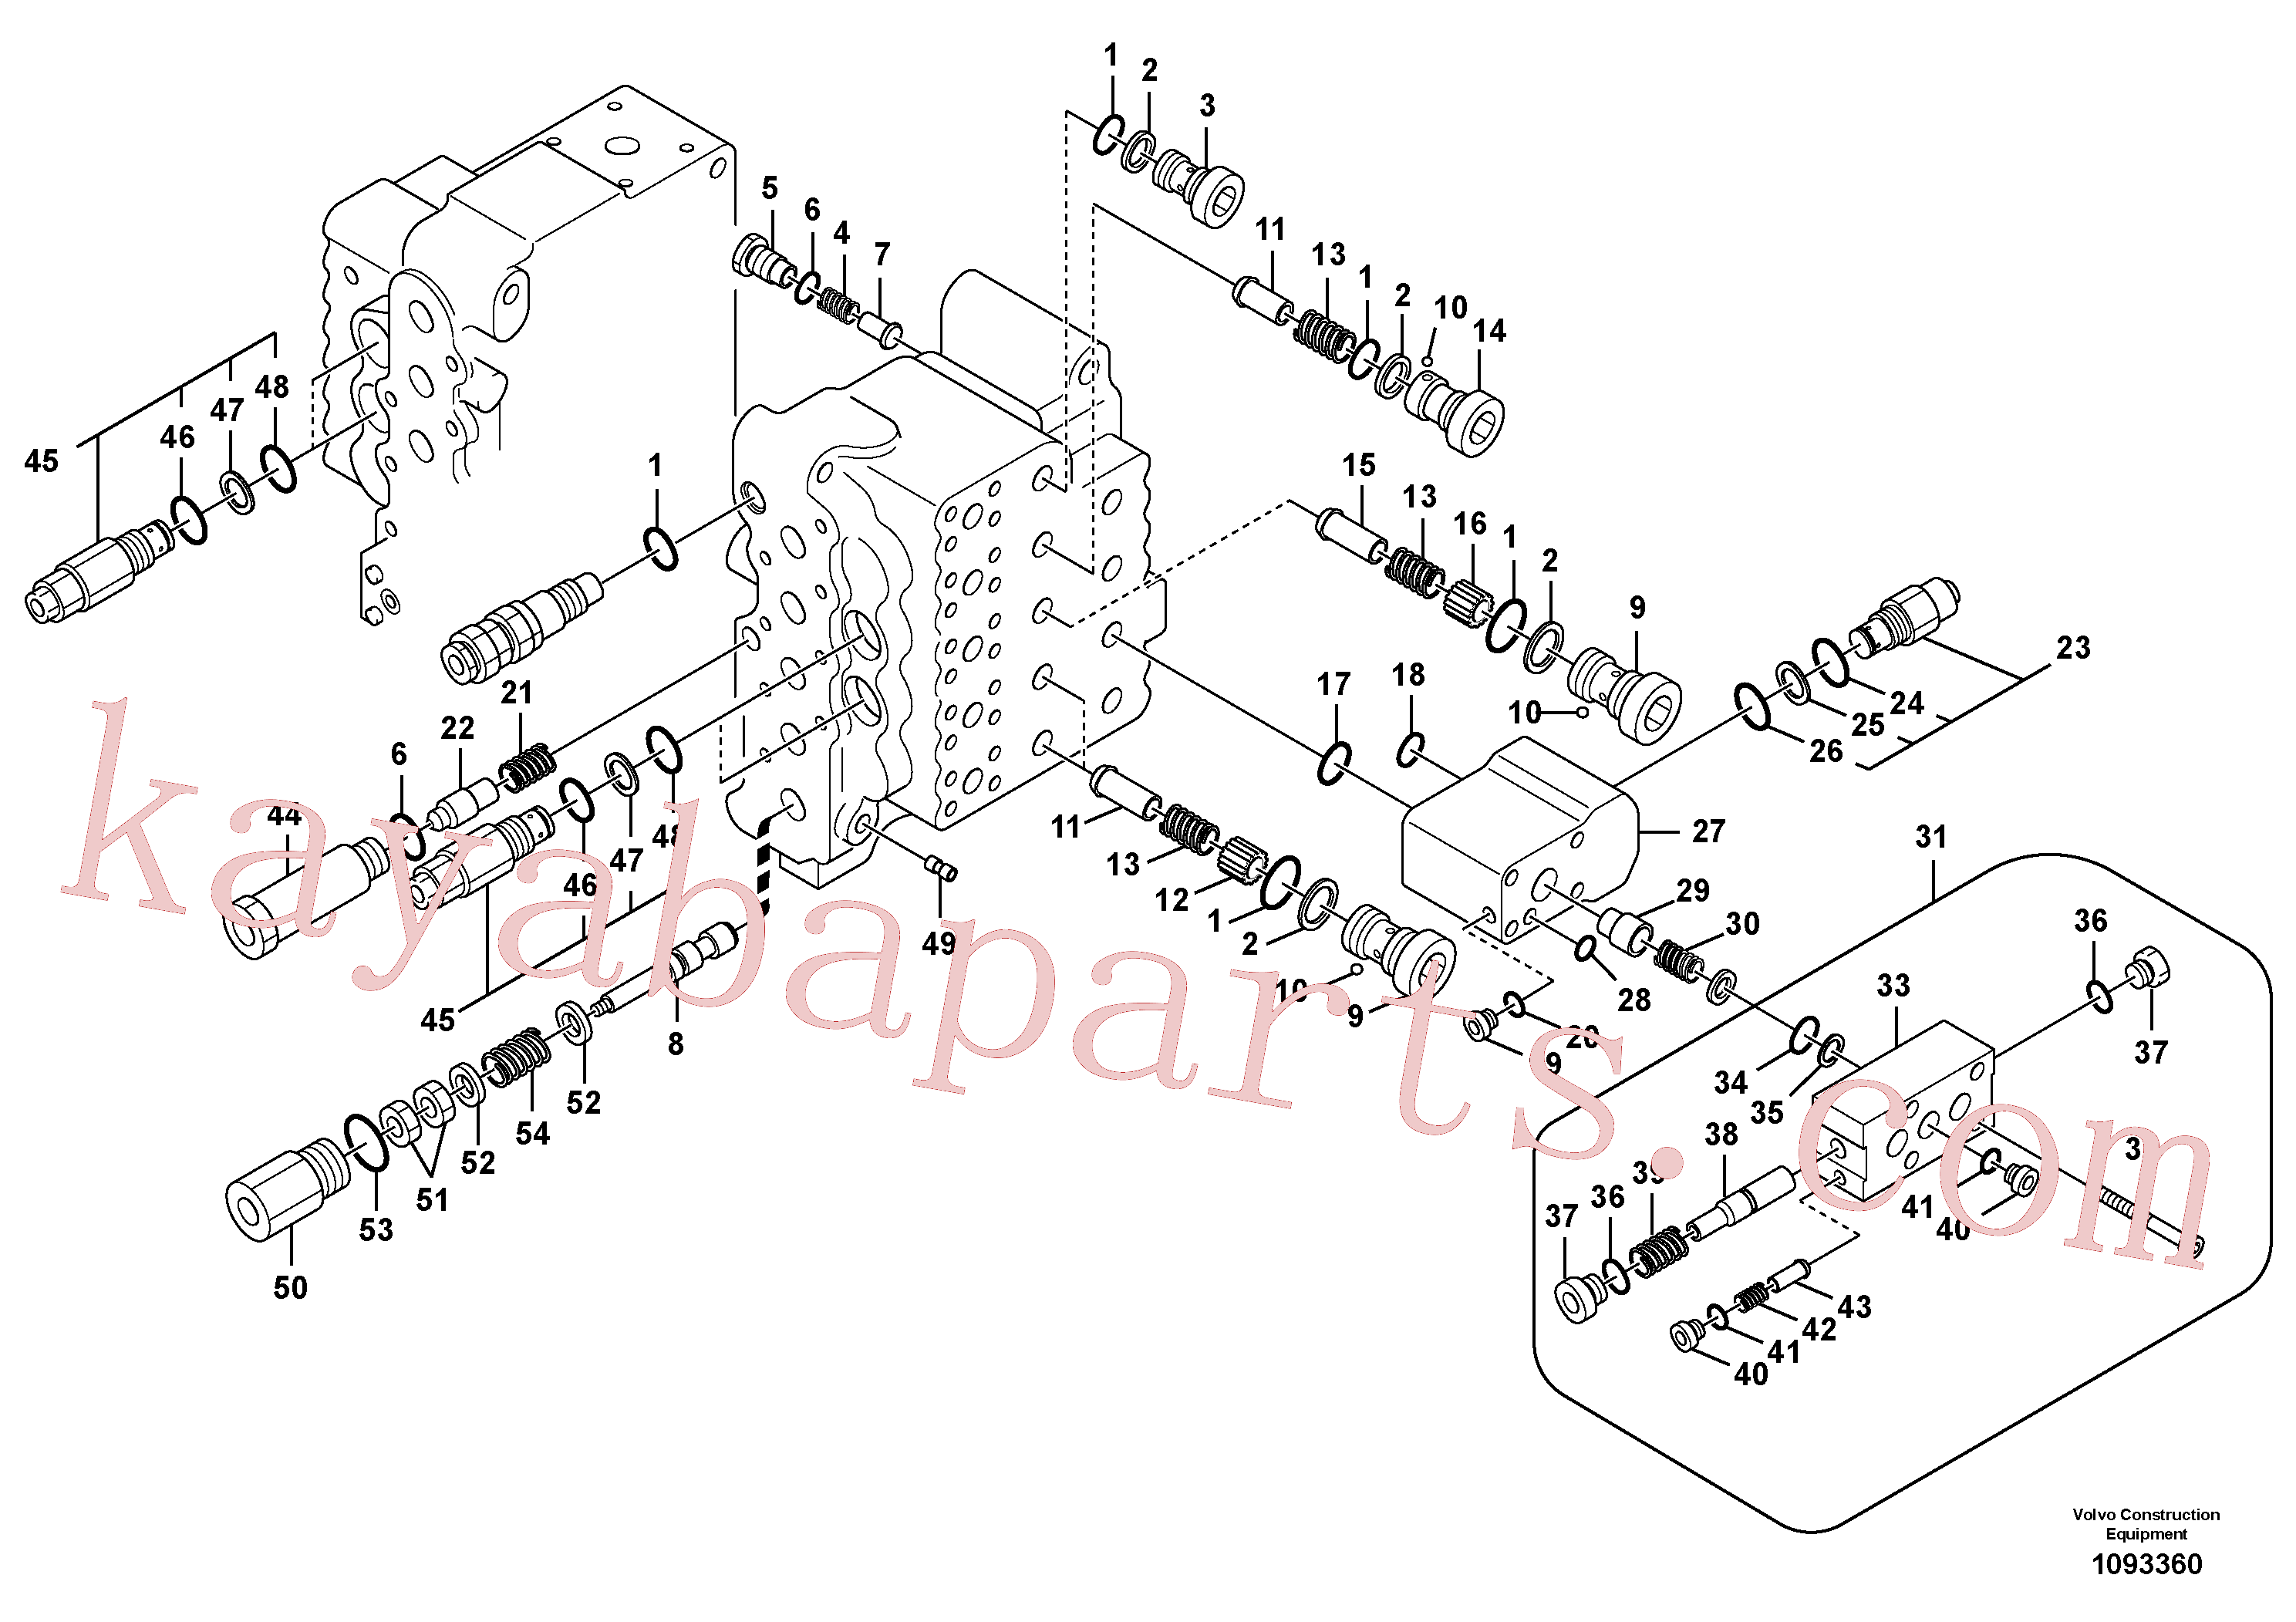 VOE14535496 for Volvo Main control valve, relief valve and dipper arm holding(1093360 assembly)